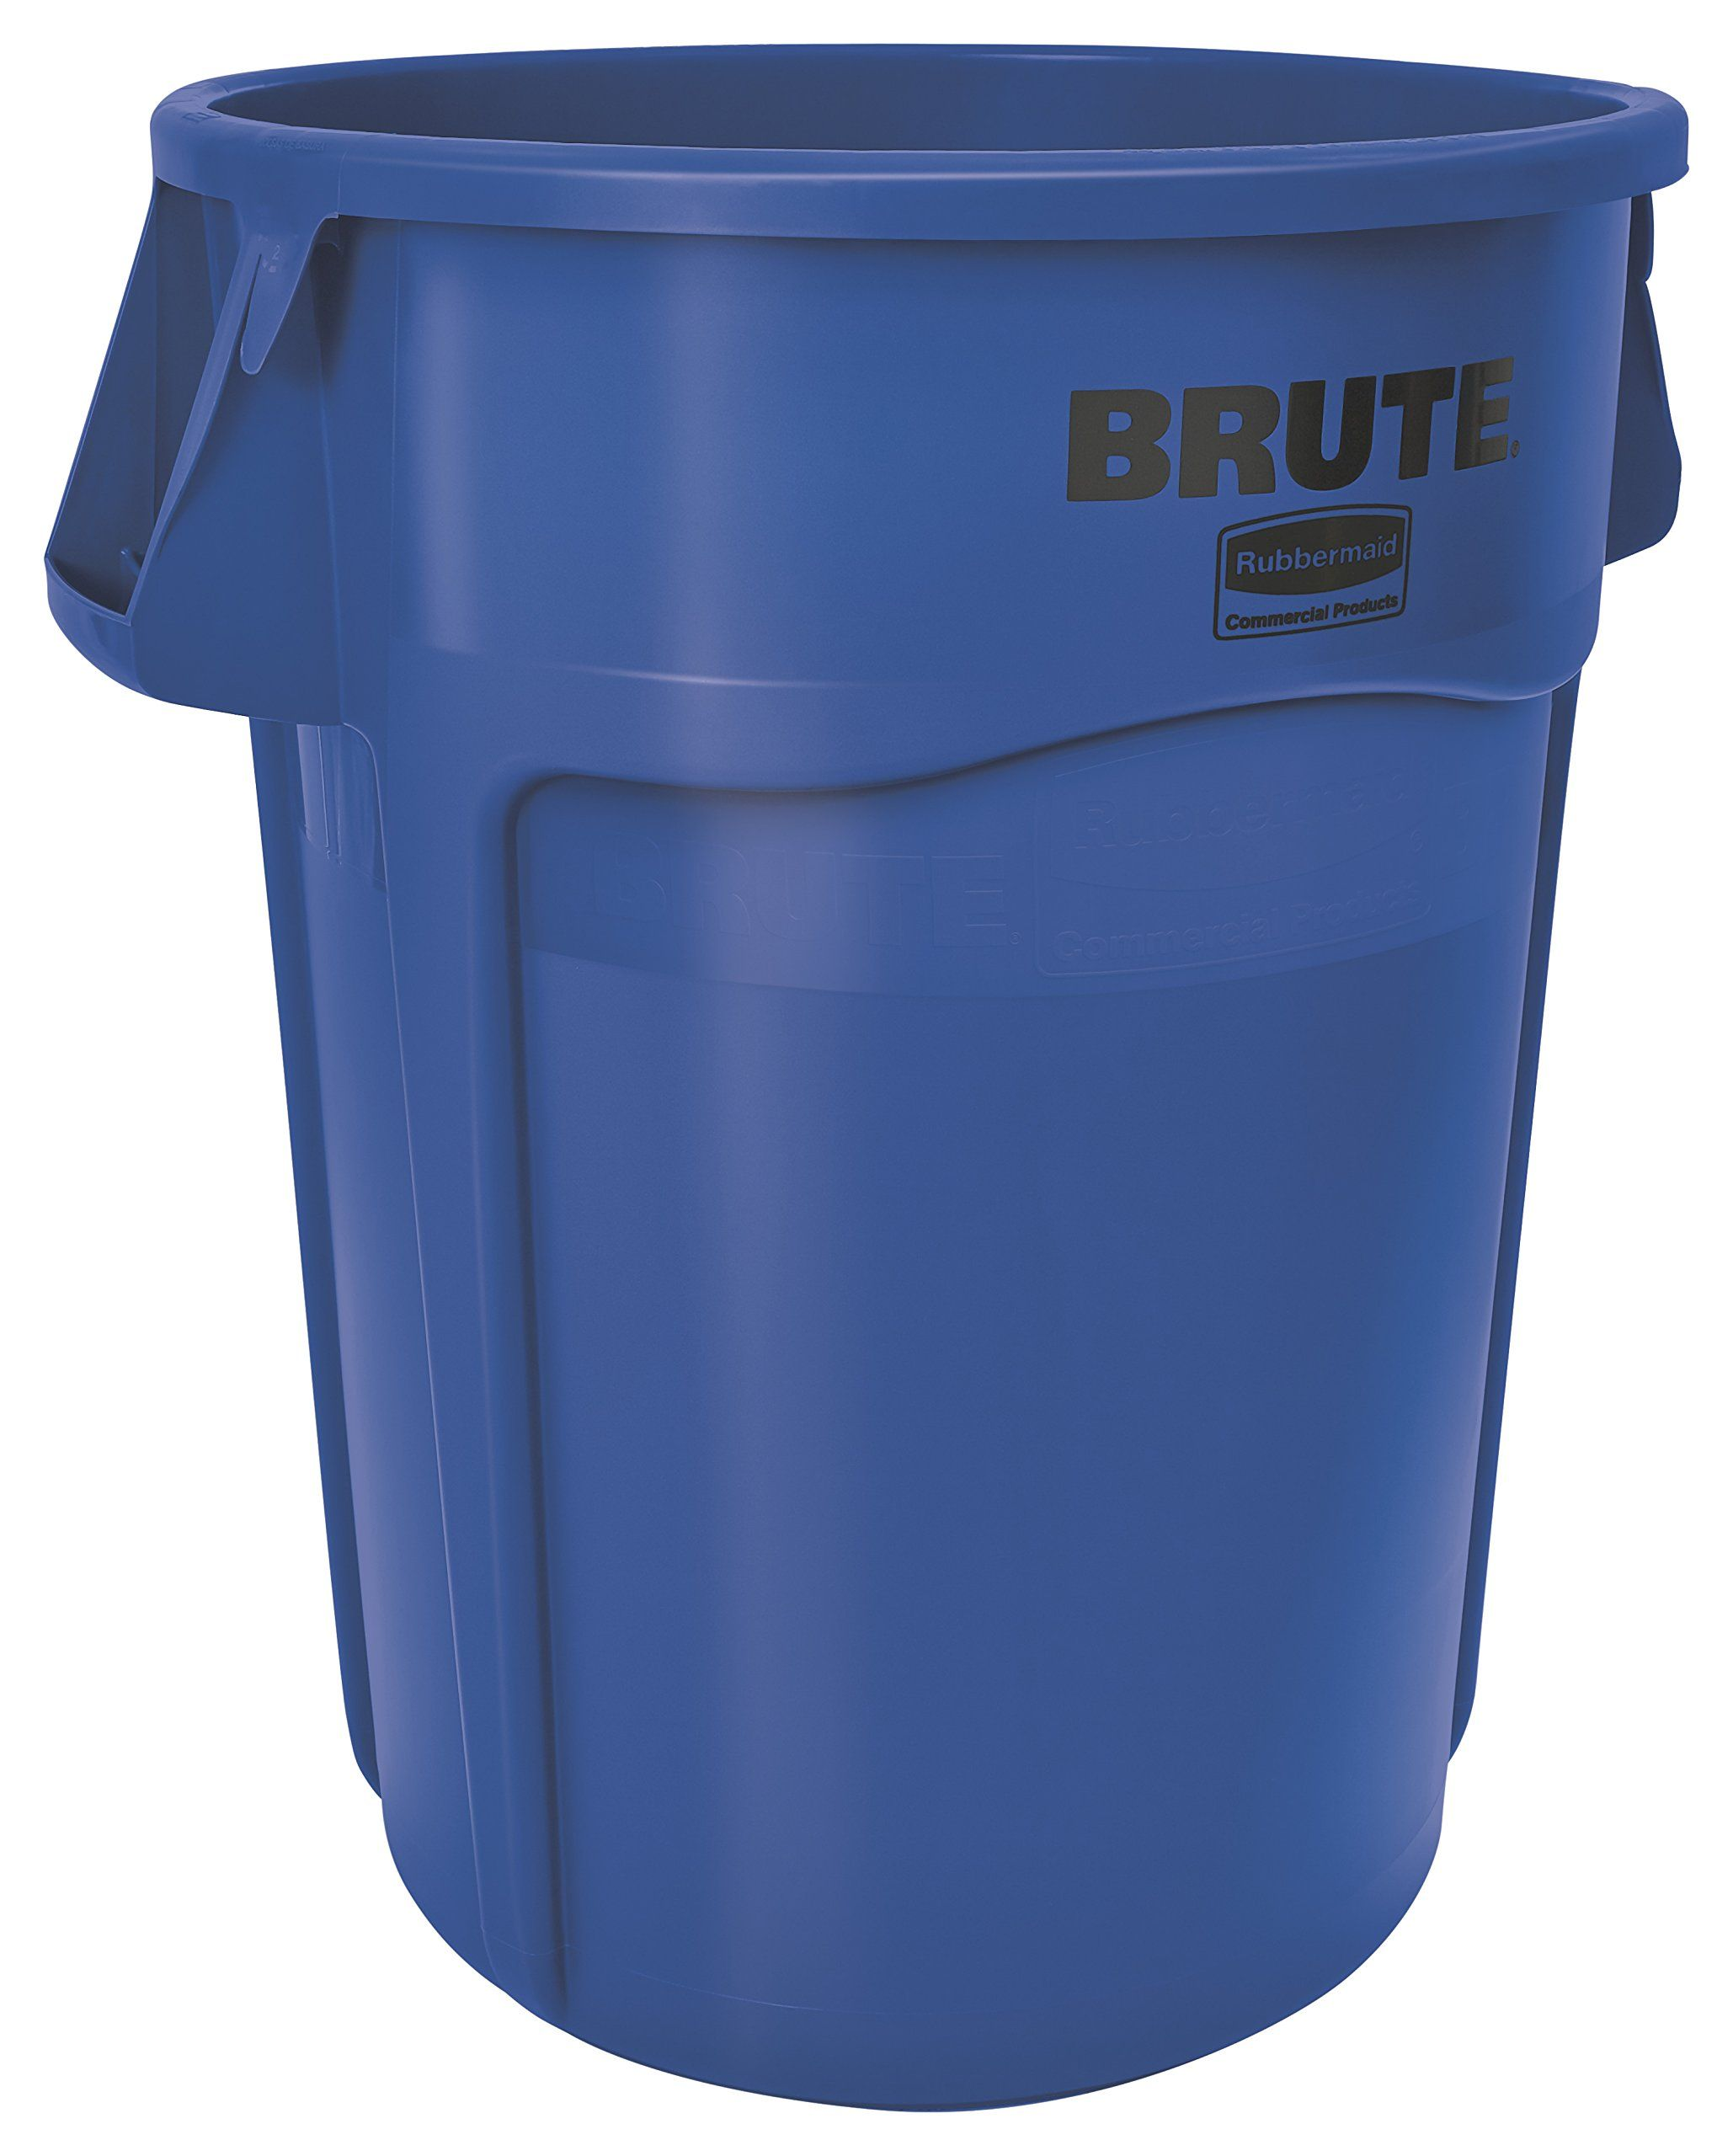 rubbermaid commercial brute plastic 55gallon trash can without lid round 33inch height blue biss basic pinterest 55 gallon - Brute Trash Can